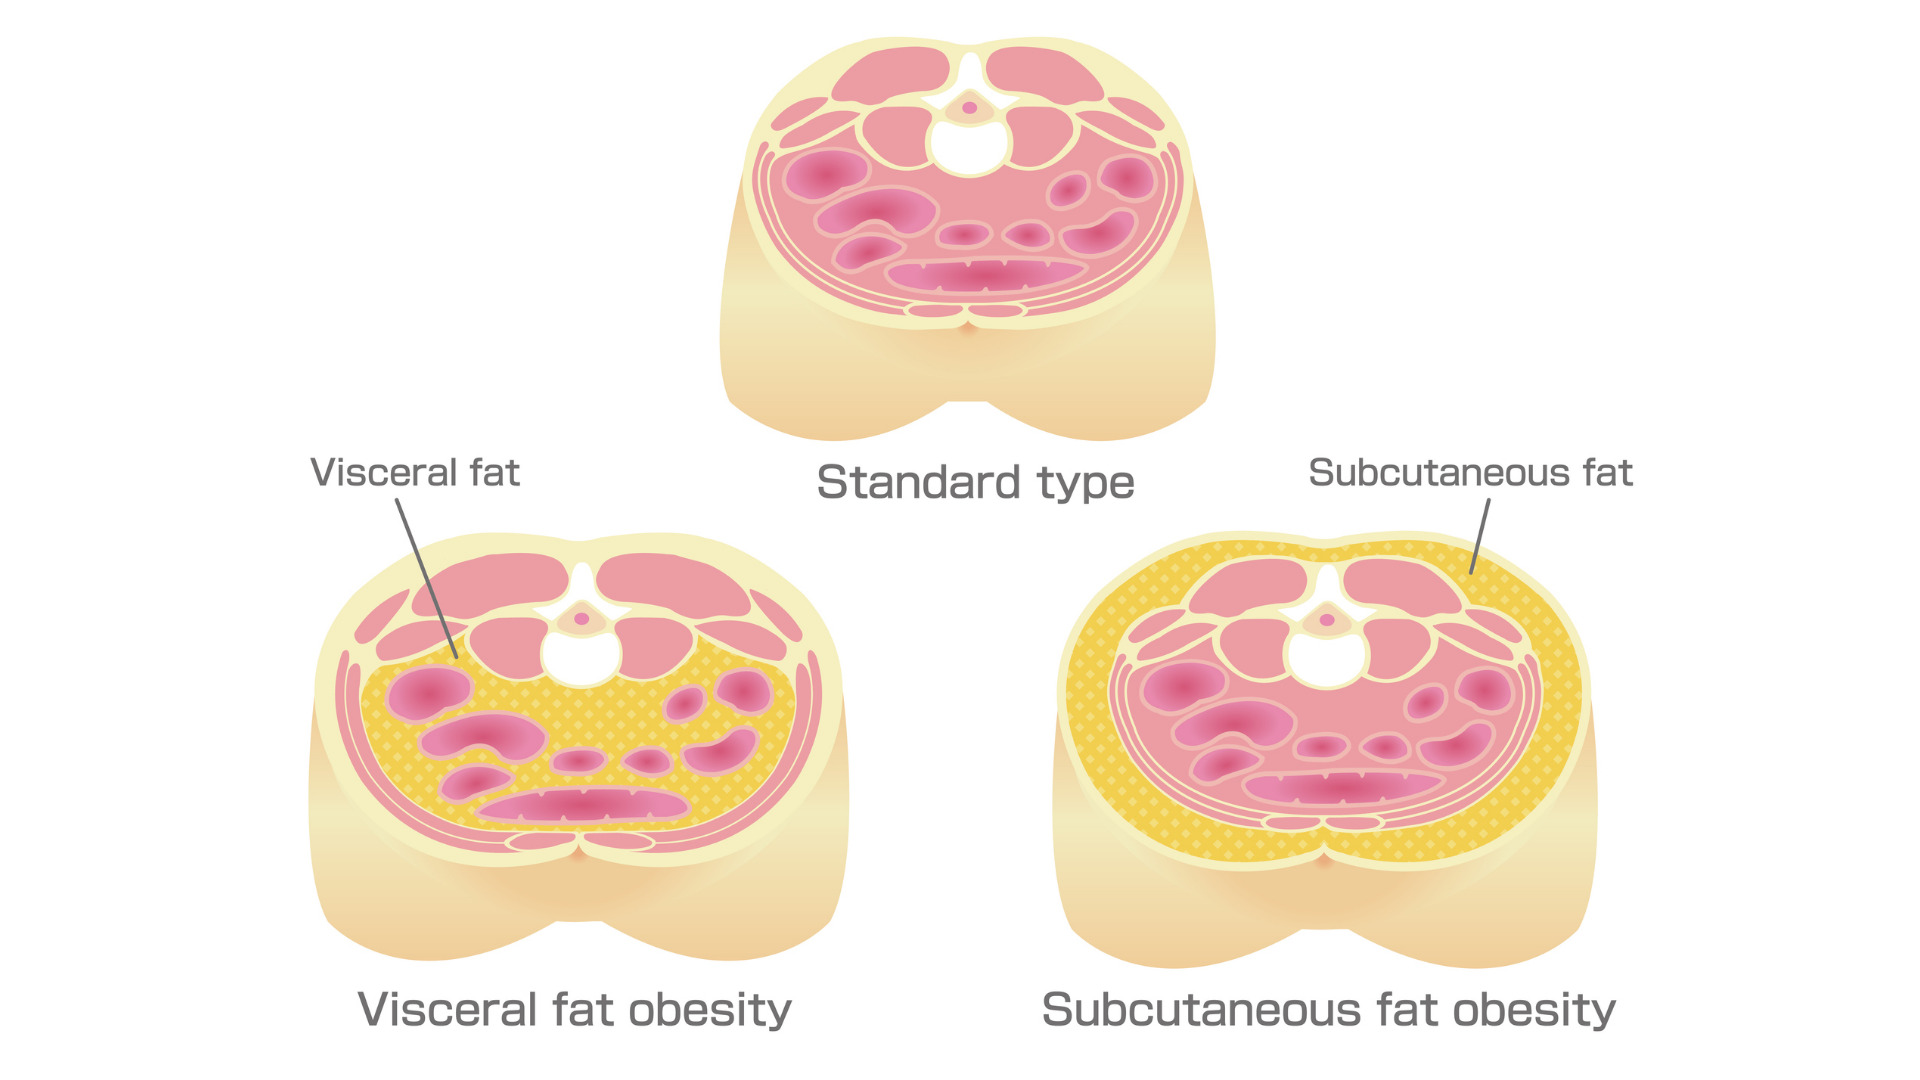 visceral fat